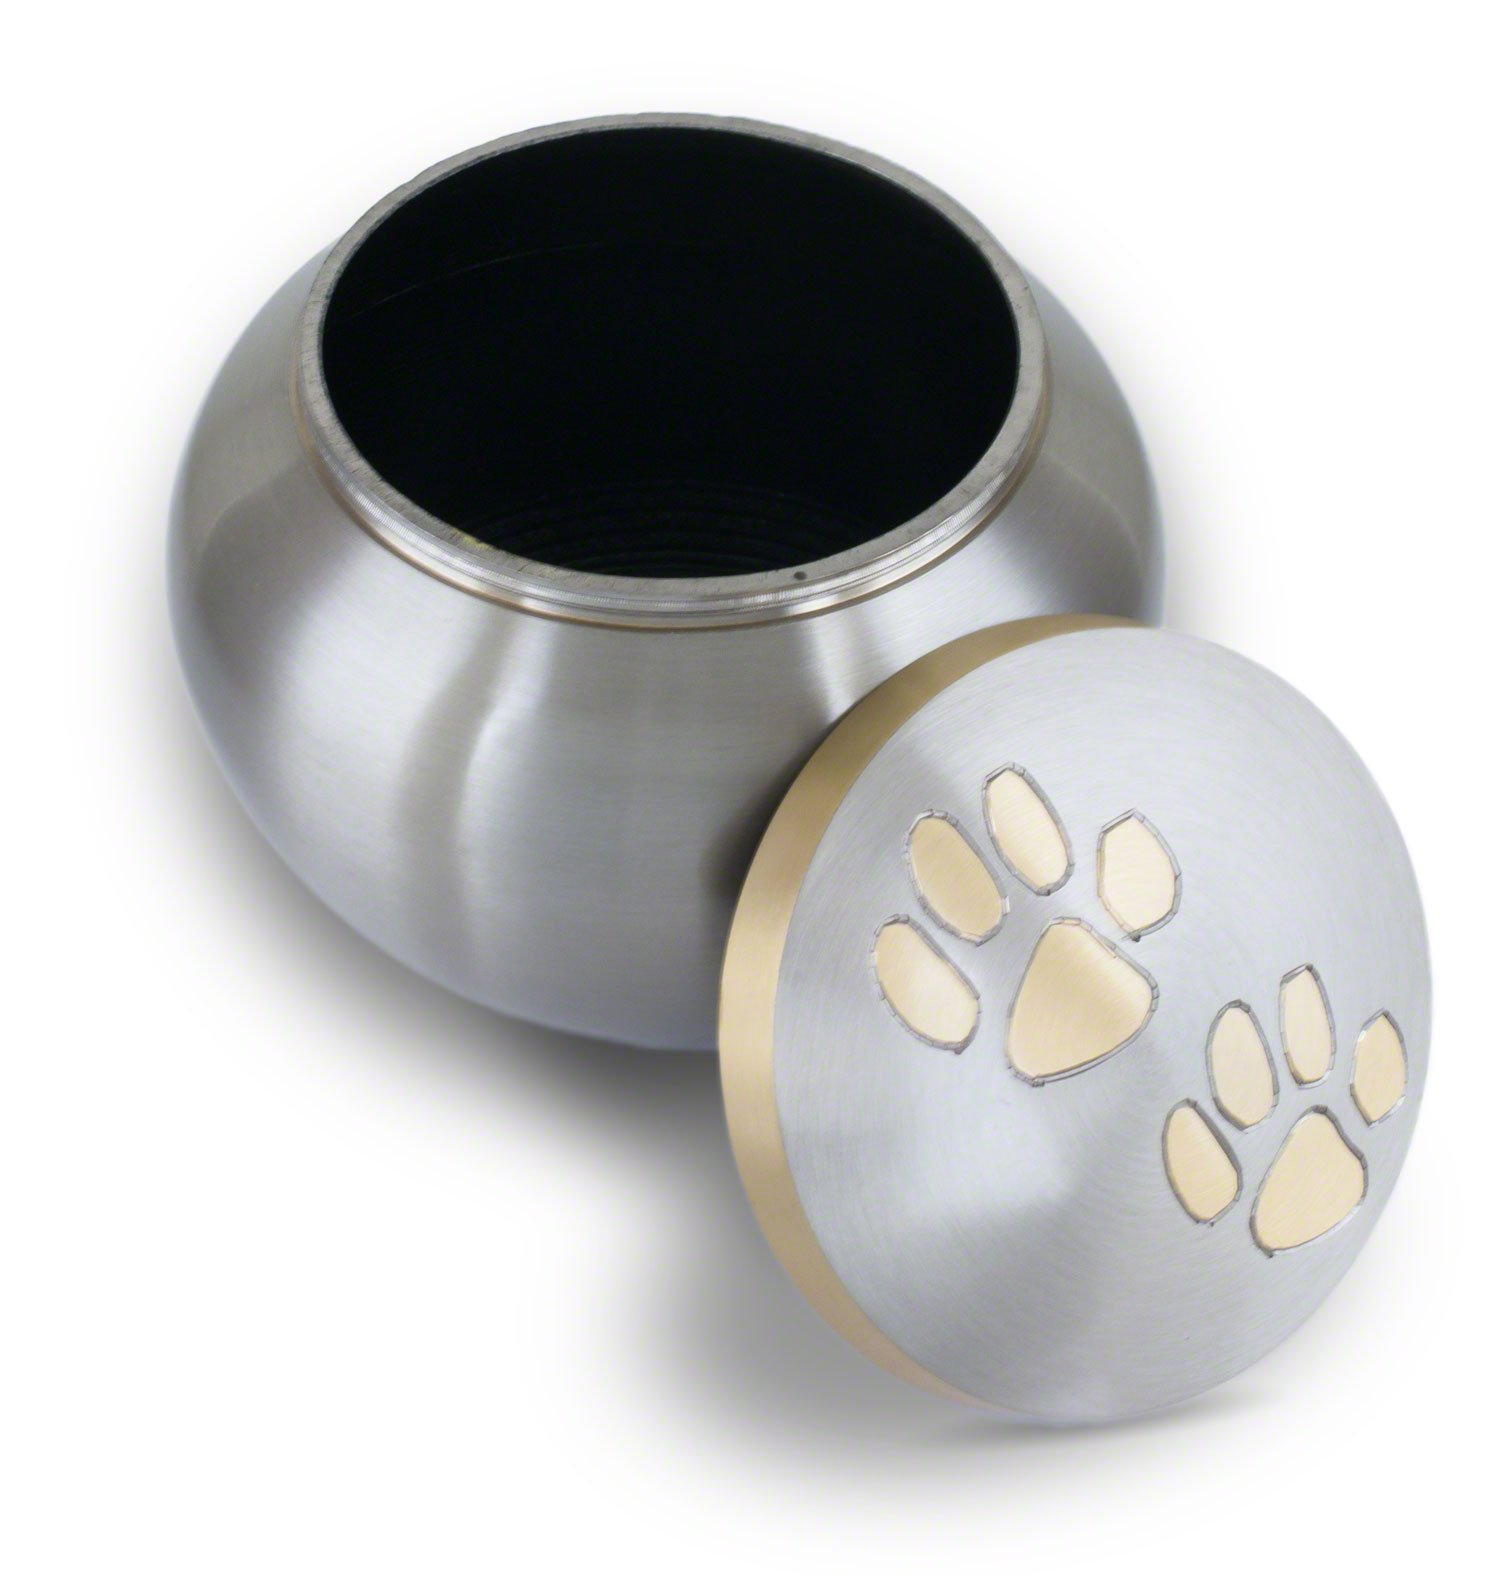 Best Friend Services Odyssey Pewter with Brass Paws (Large) by Best Friend Services (Image #3)